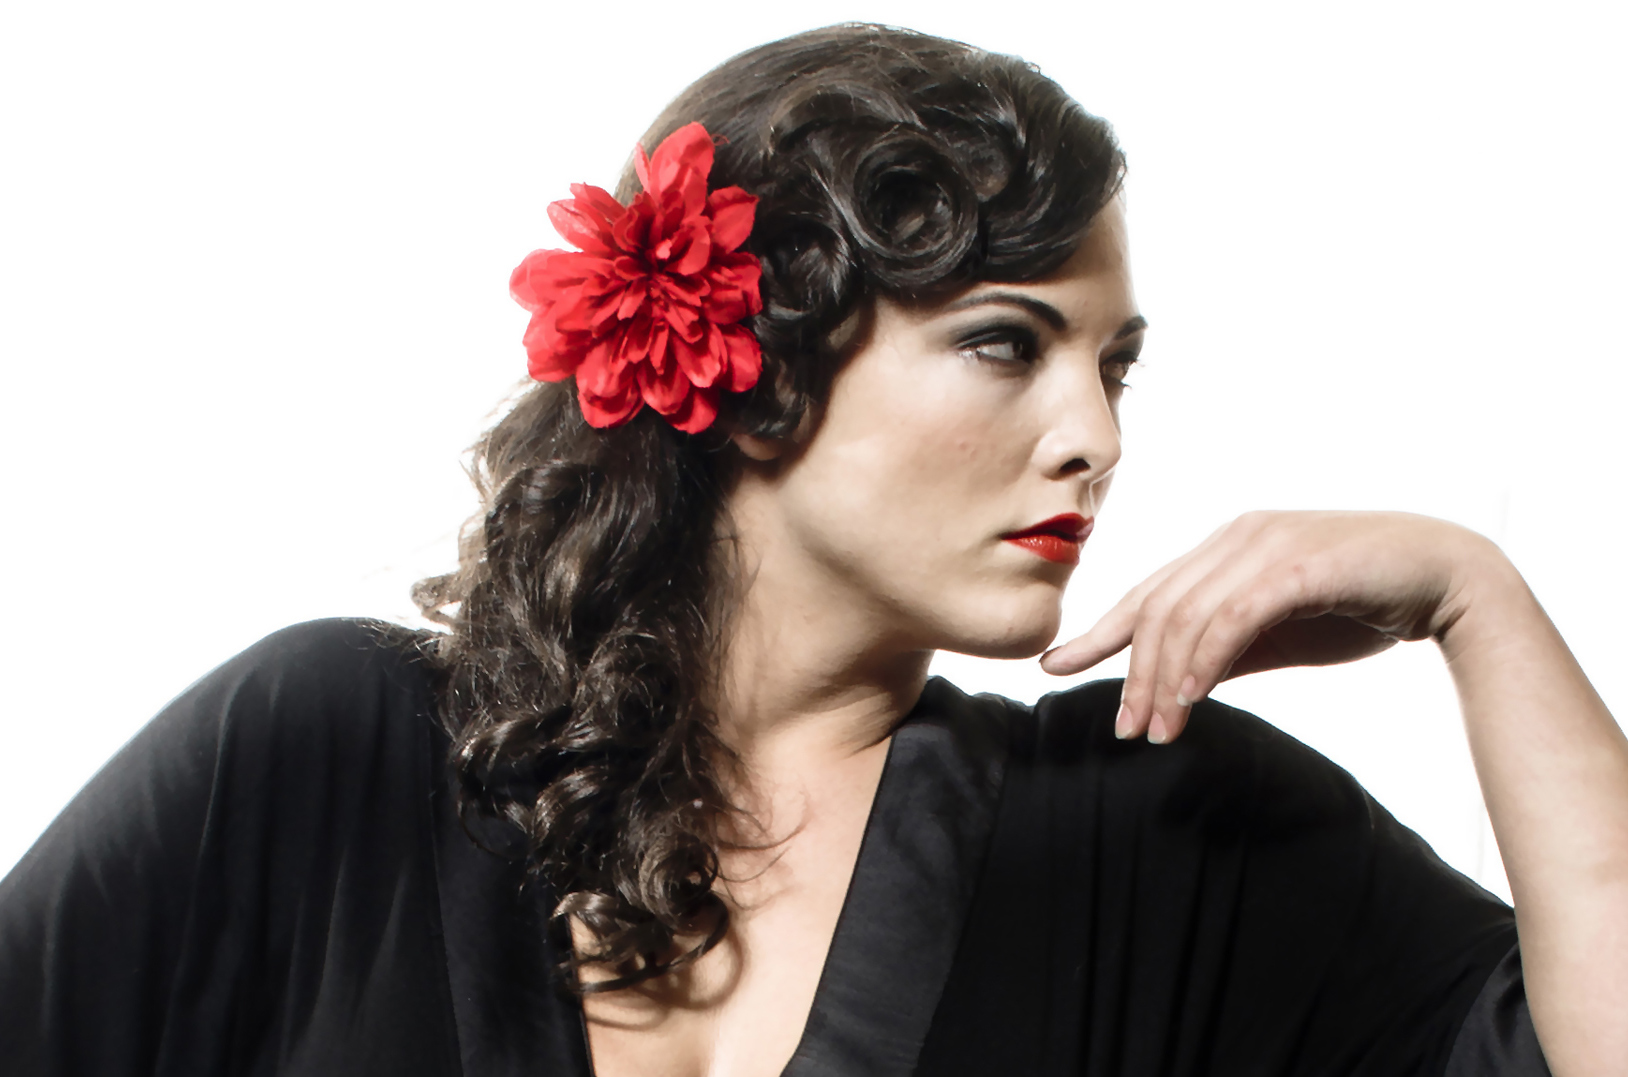 The Dutch Songstress, Caro Emerald Chats About How She Has